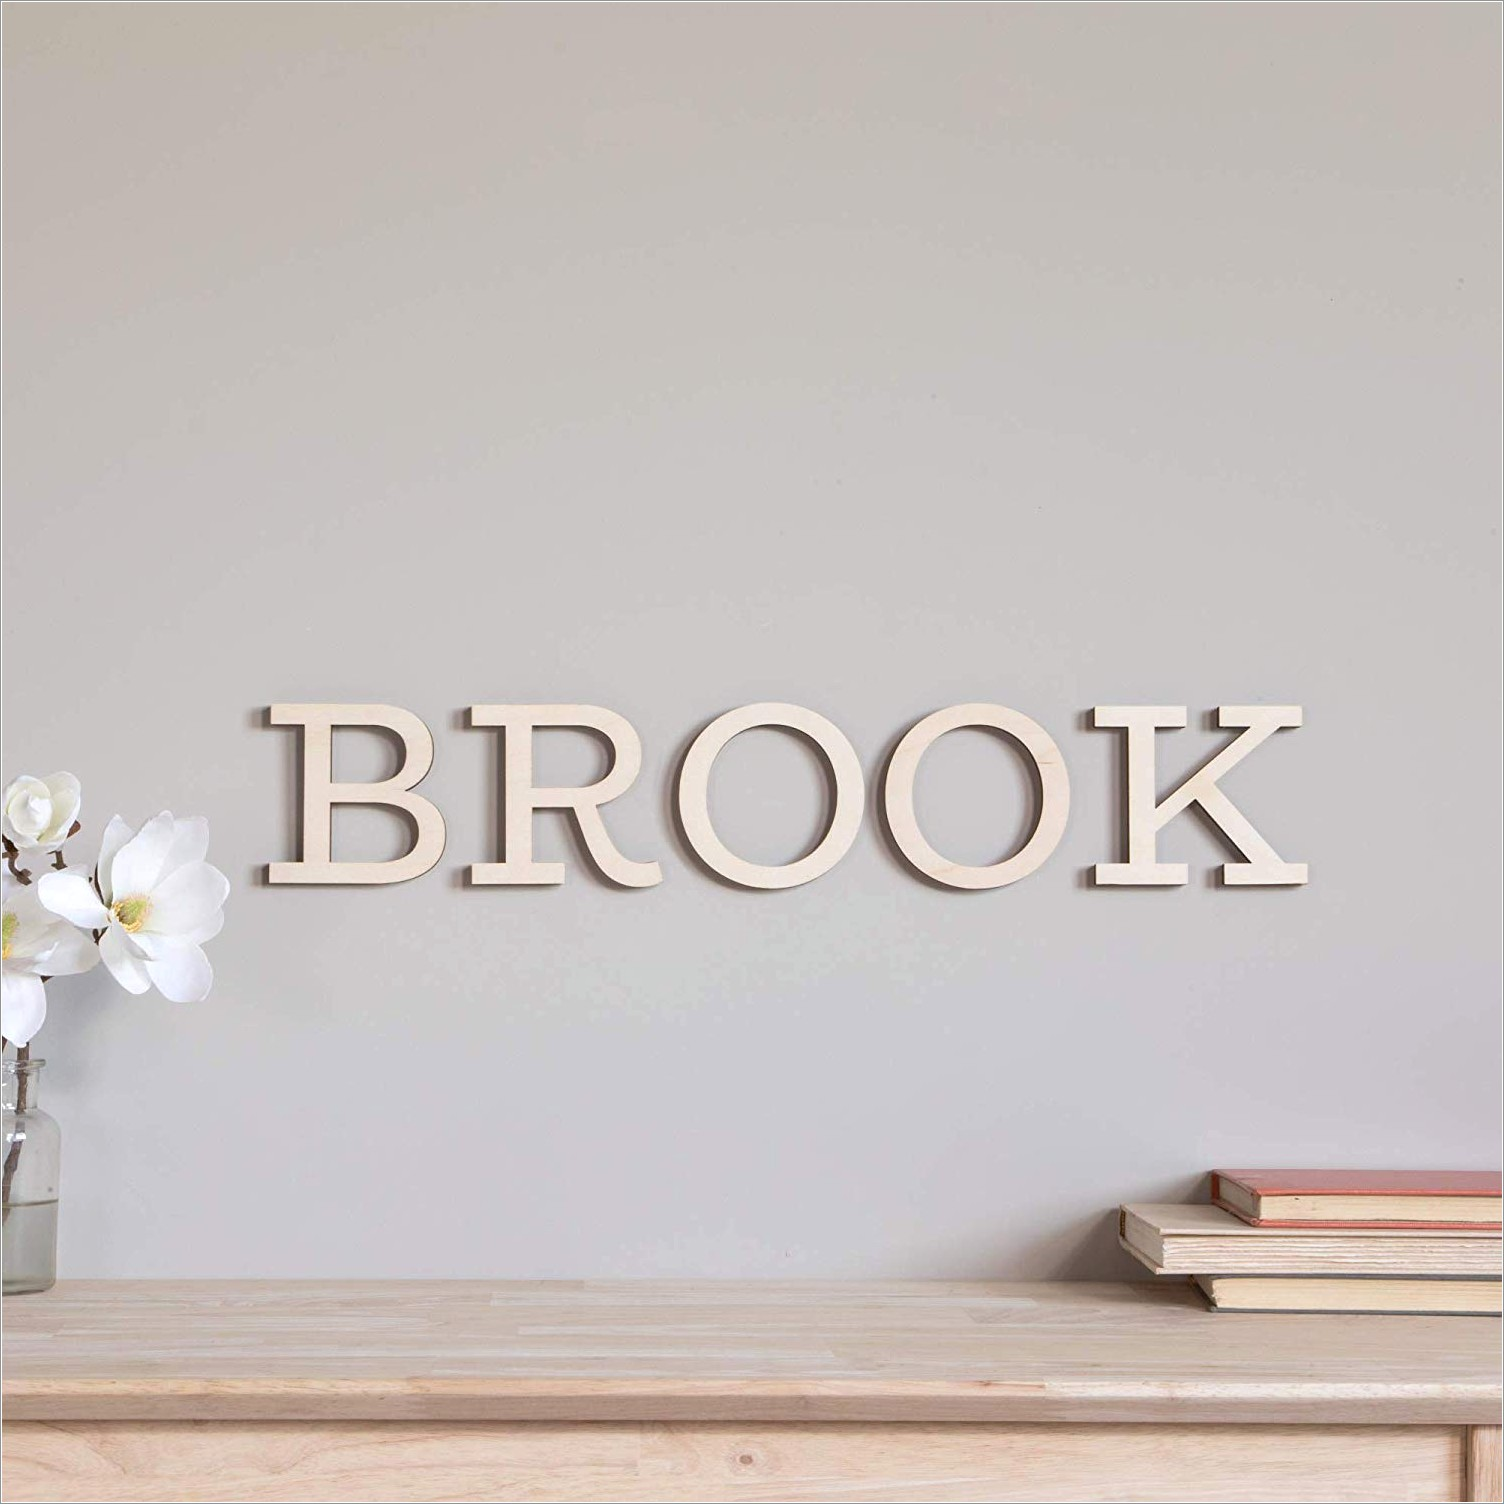 12 Inch Wooden Wall Letters